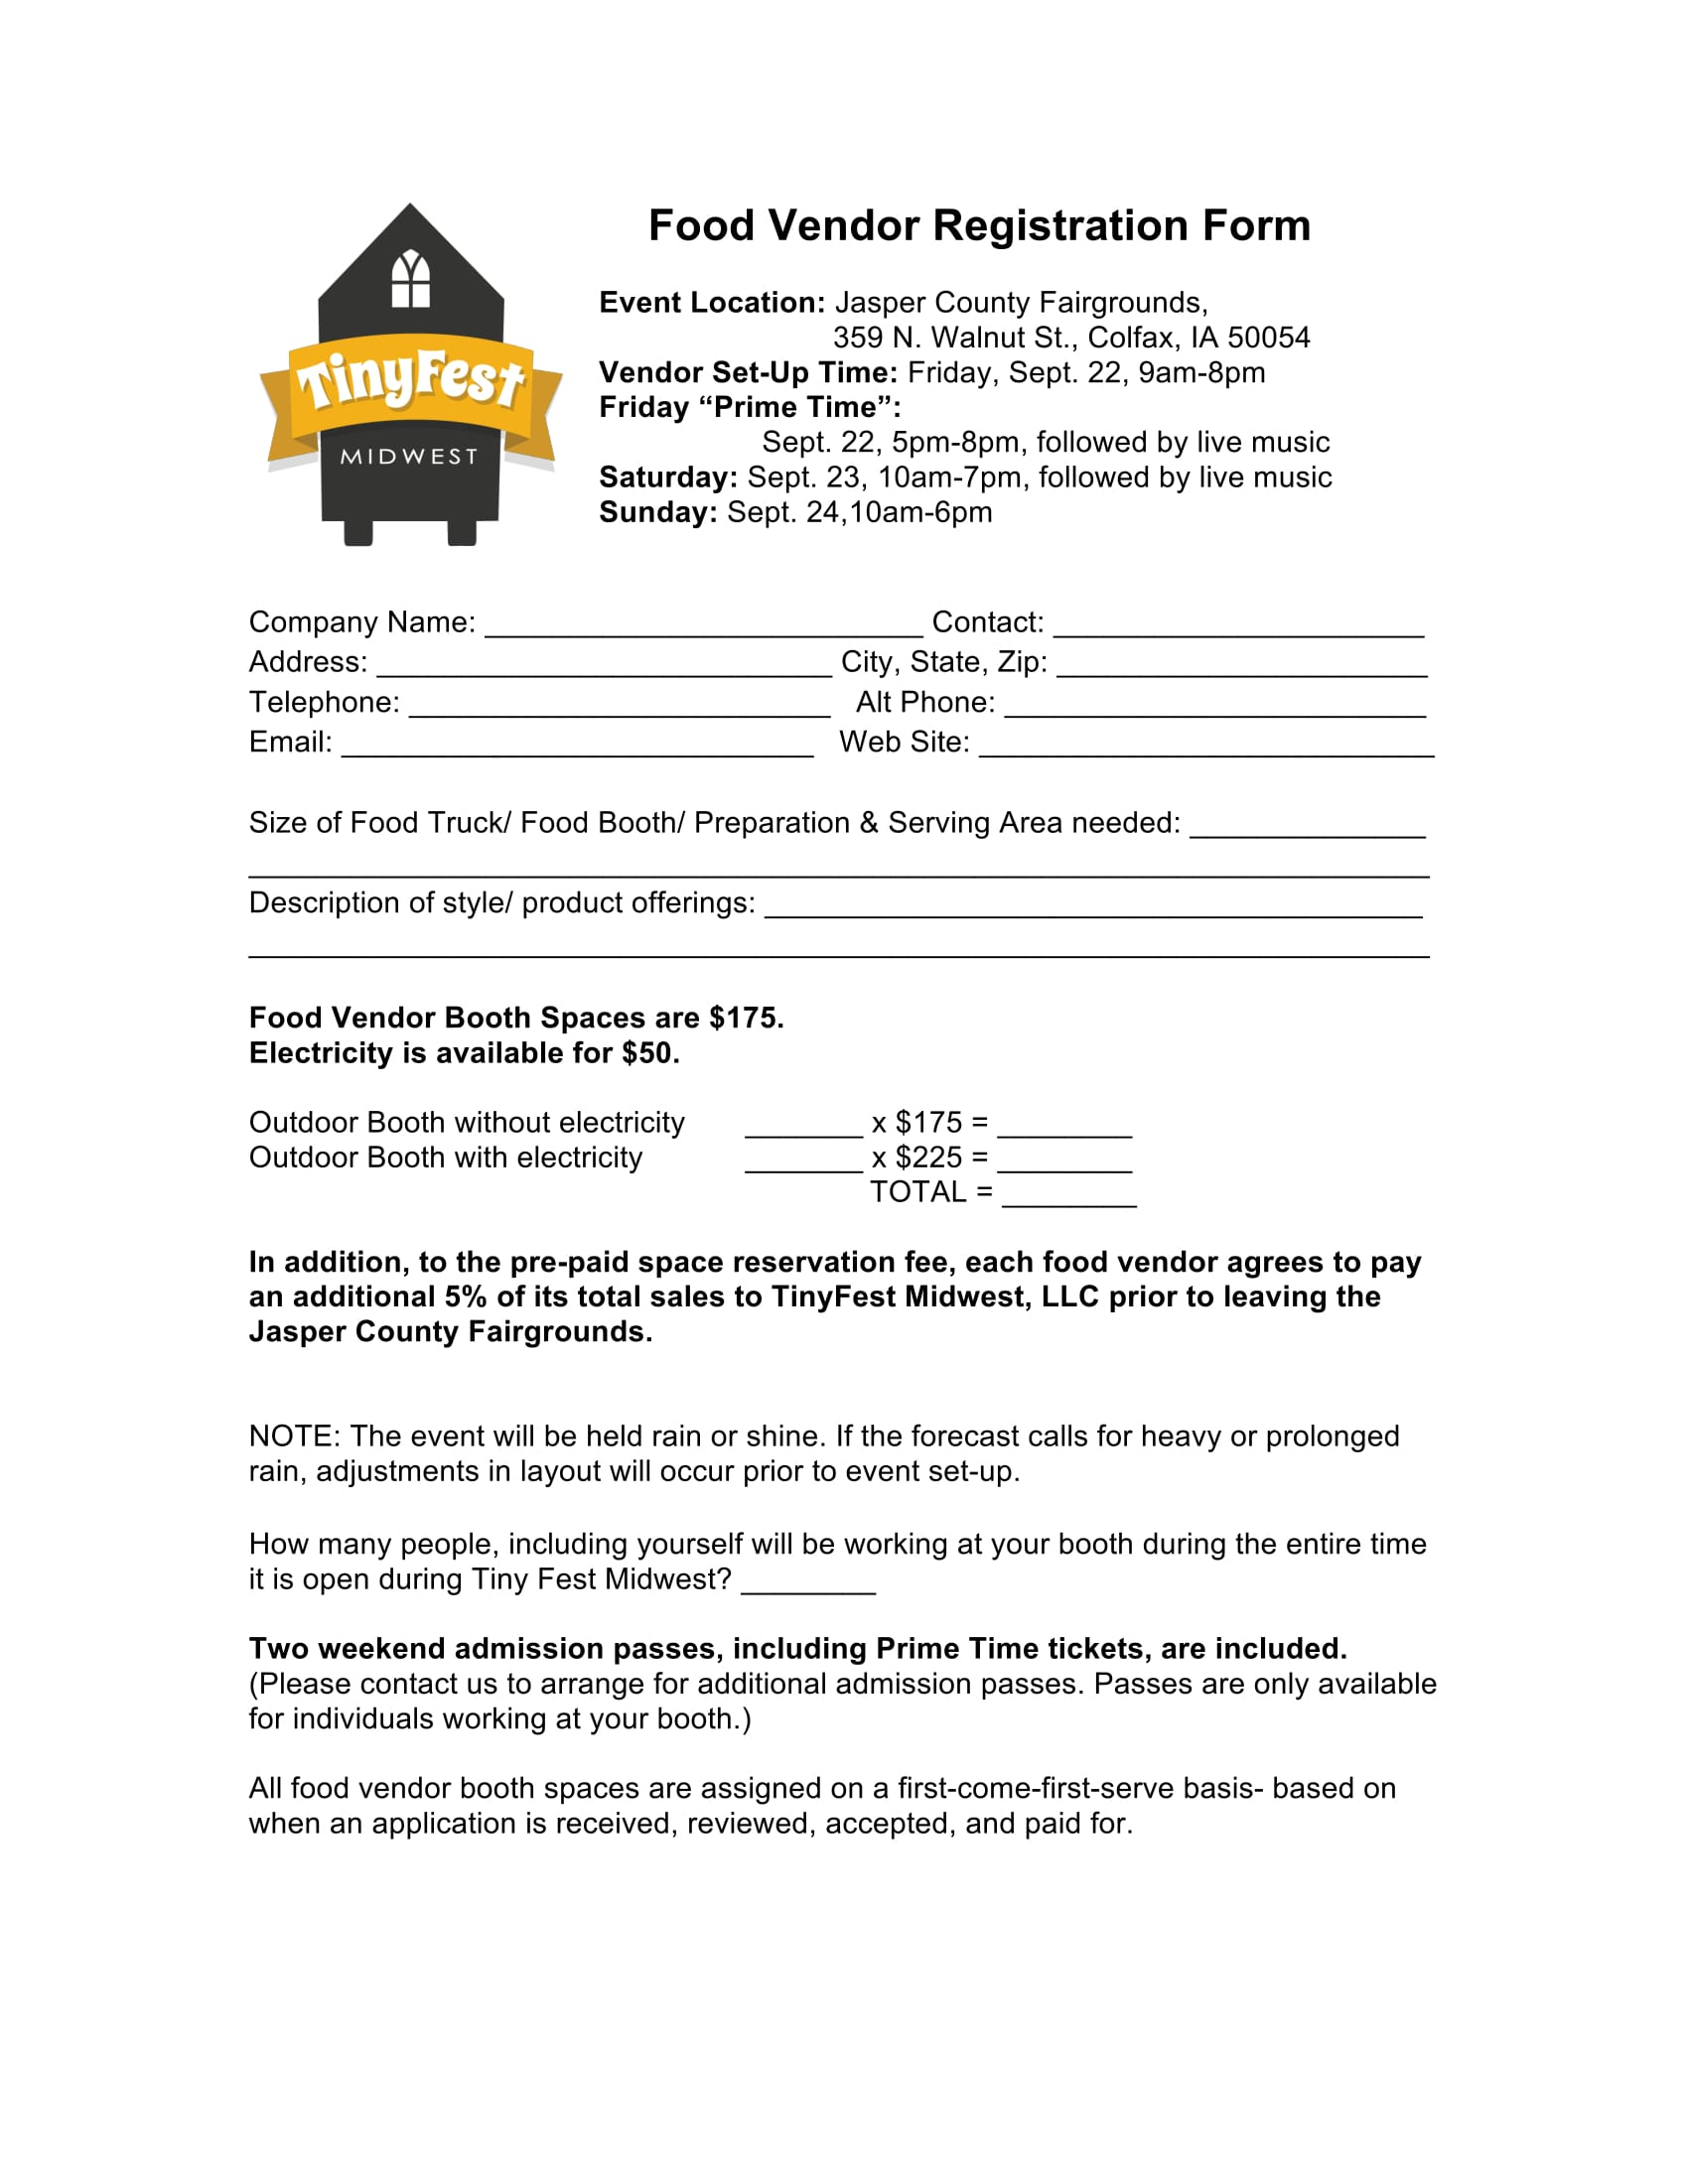 10 Event Vendor Registration Form Free Word PDF Download – Vendor Registration Form